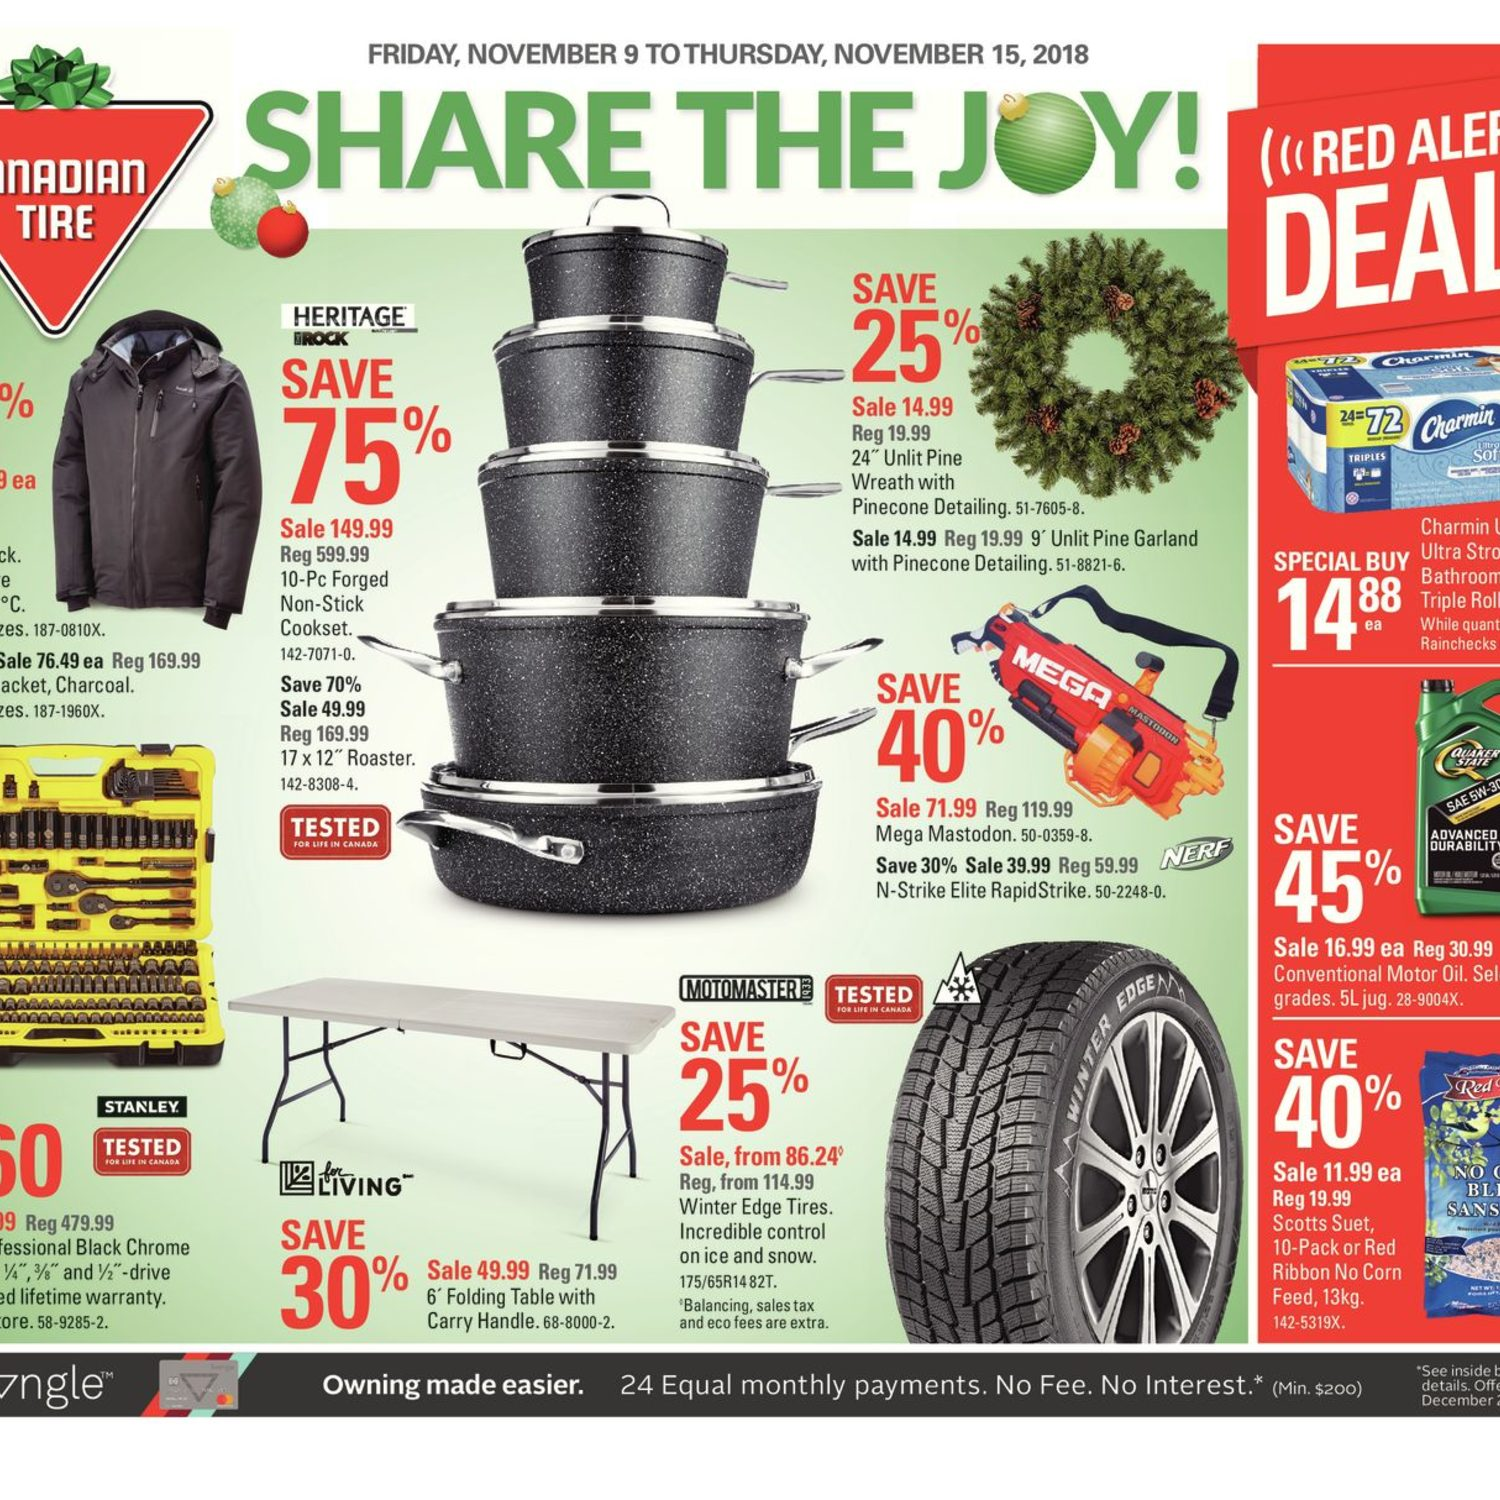 Canadian Tire Weekly Flyer Weekly Share The Joy Nov 9 15 Redflagdeals Com